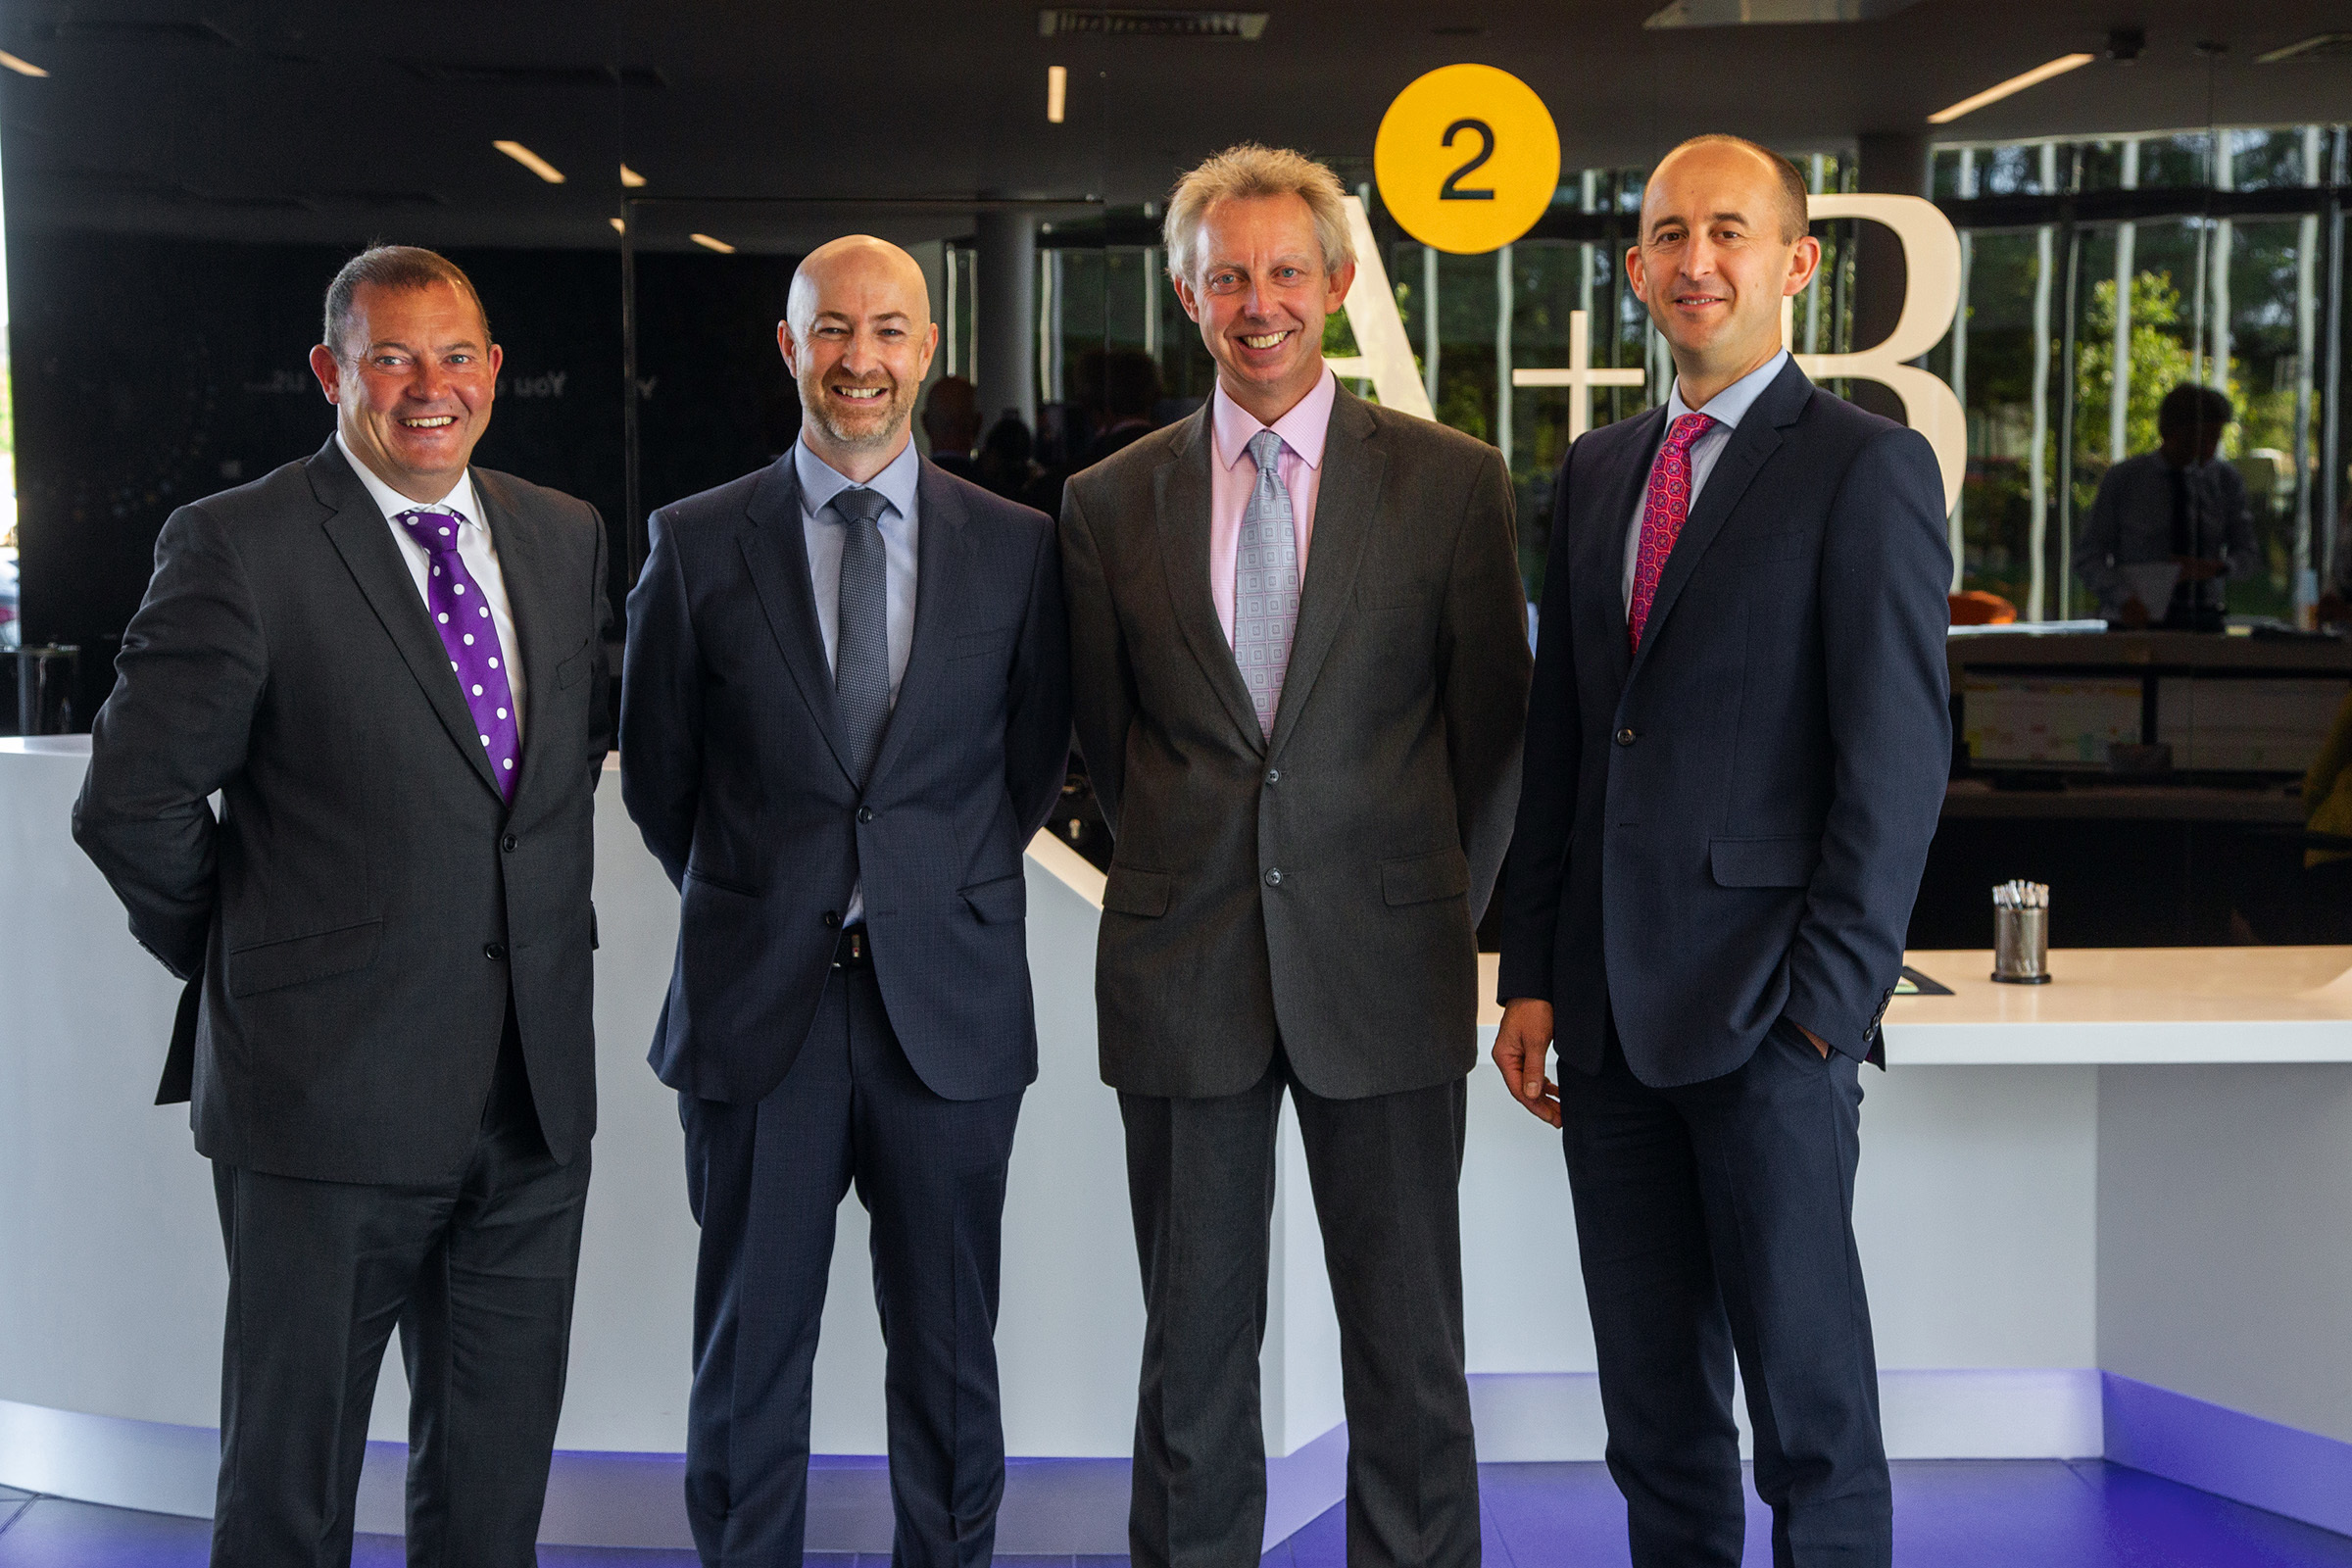 Pictured (from left to right): AAB's Senior Upstream Oil & Gas Team - John Black, Graeme Robertson, Ian McPherson and Alasdair Green